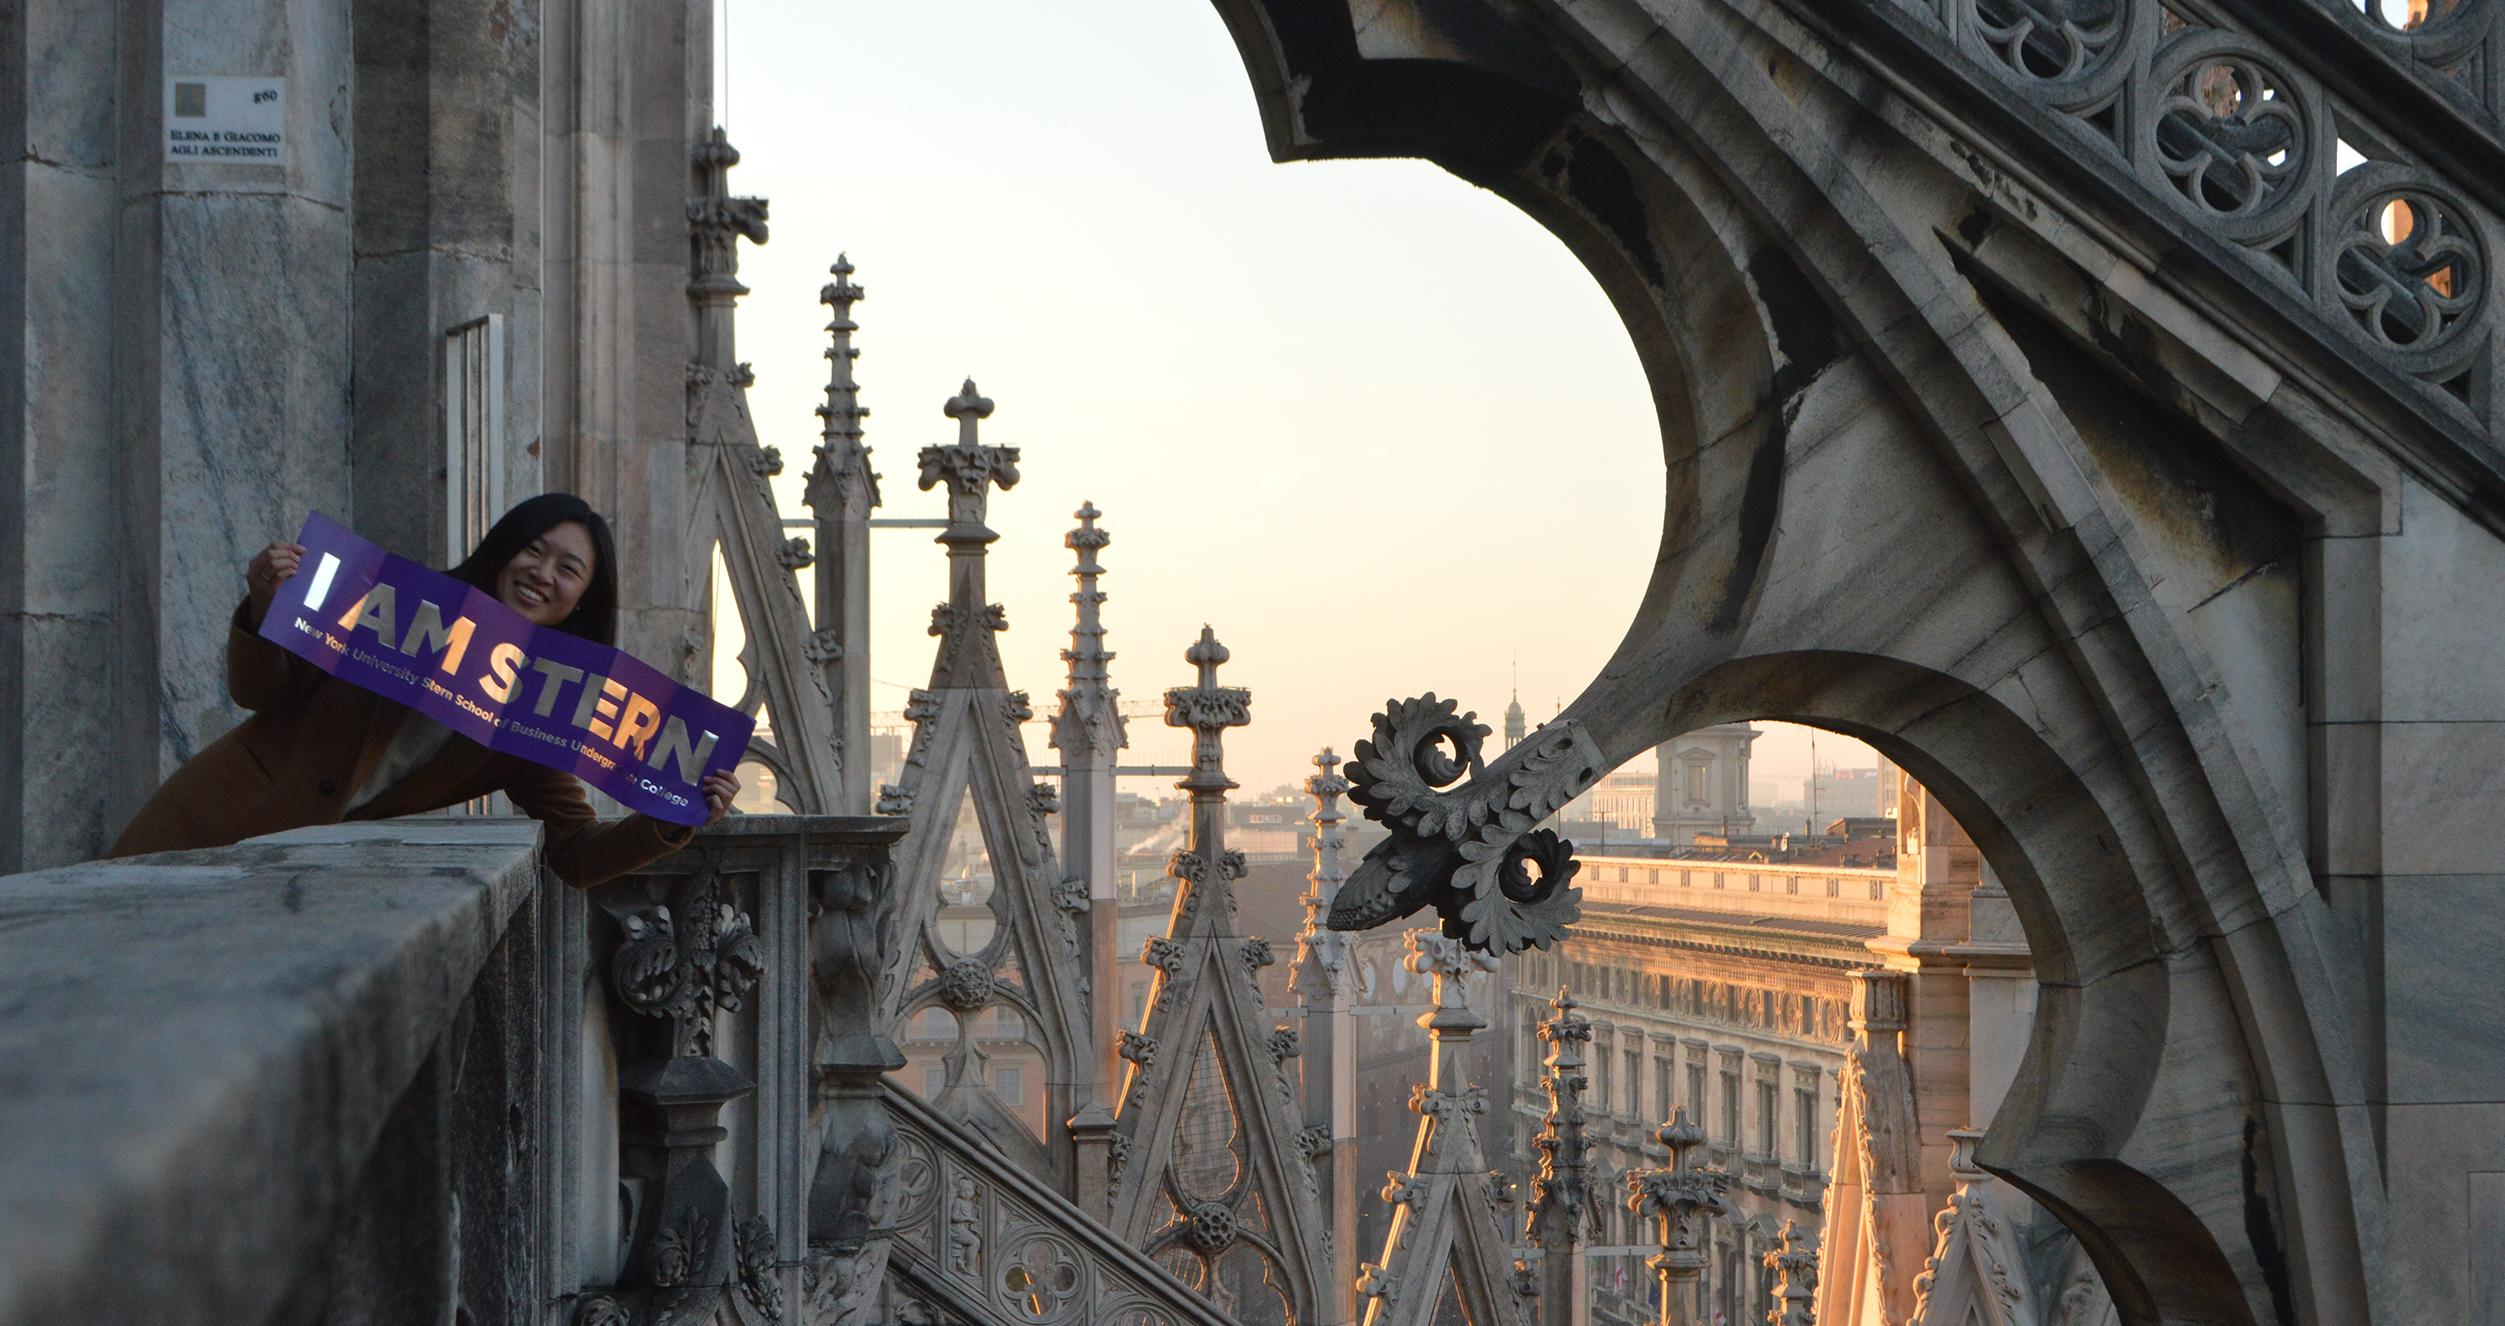 NYU Stern student Jessica Guo poses for a photo at the Duomo in Milan, Italy